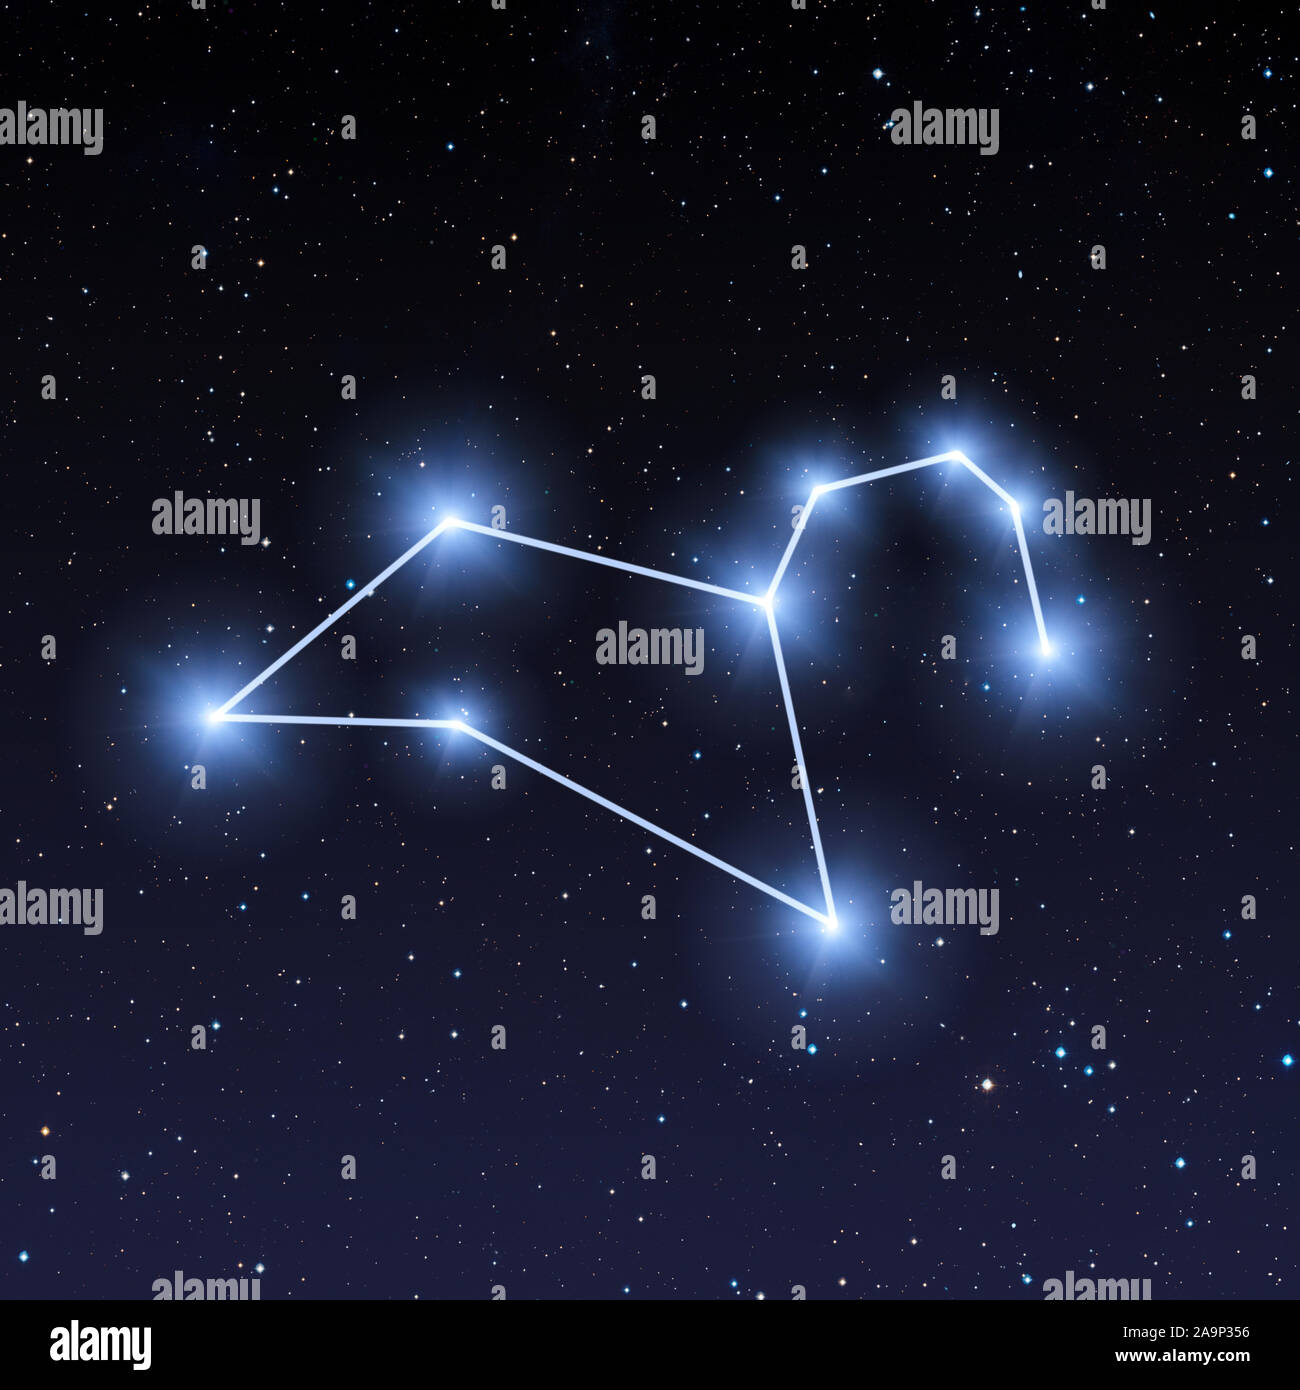 leo constellation in night sky with bright blue stars 2A9P356